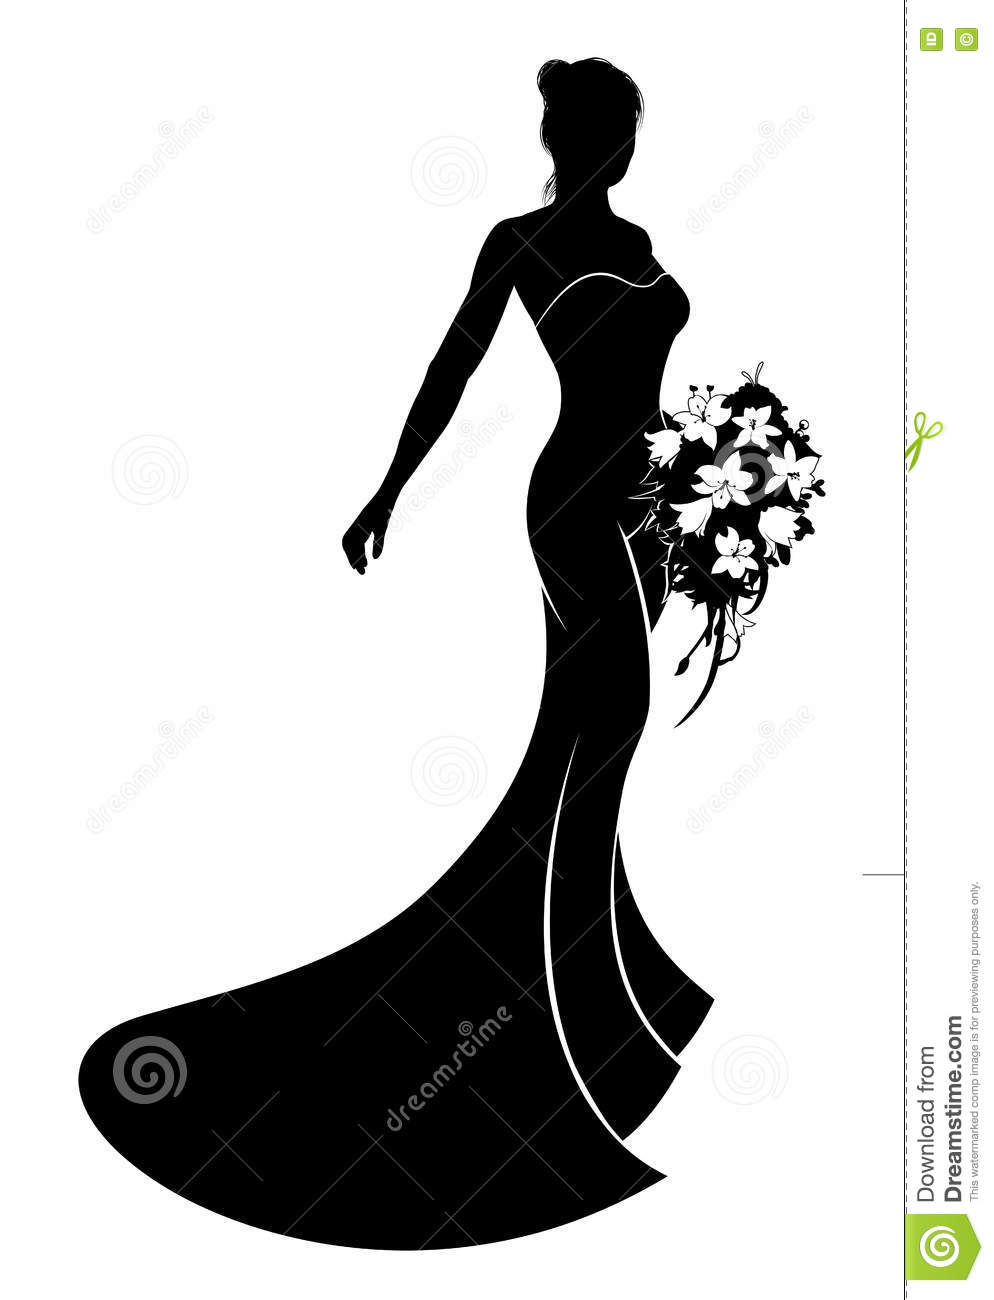 Wedding Dress Bride Silhouette Stock Vector - Illustration of bride ...